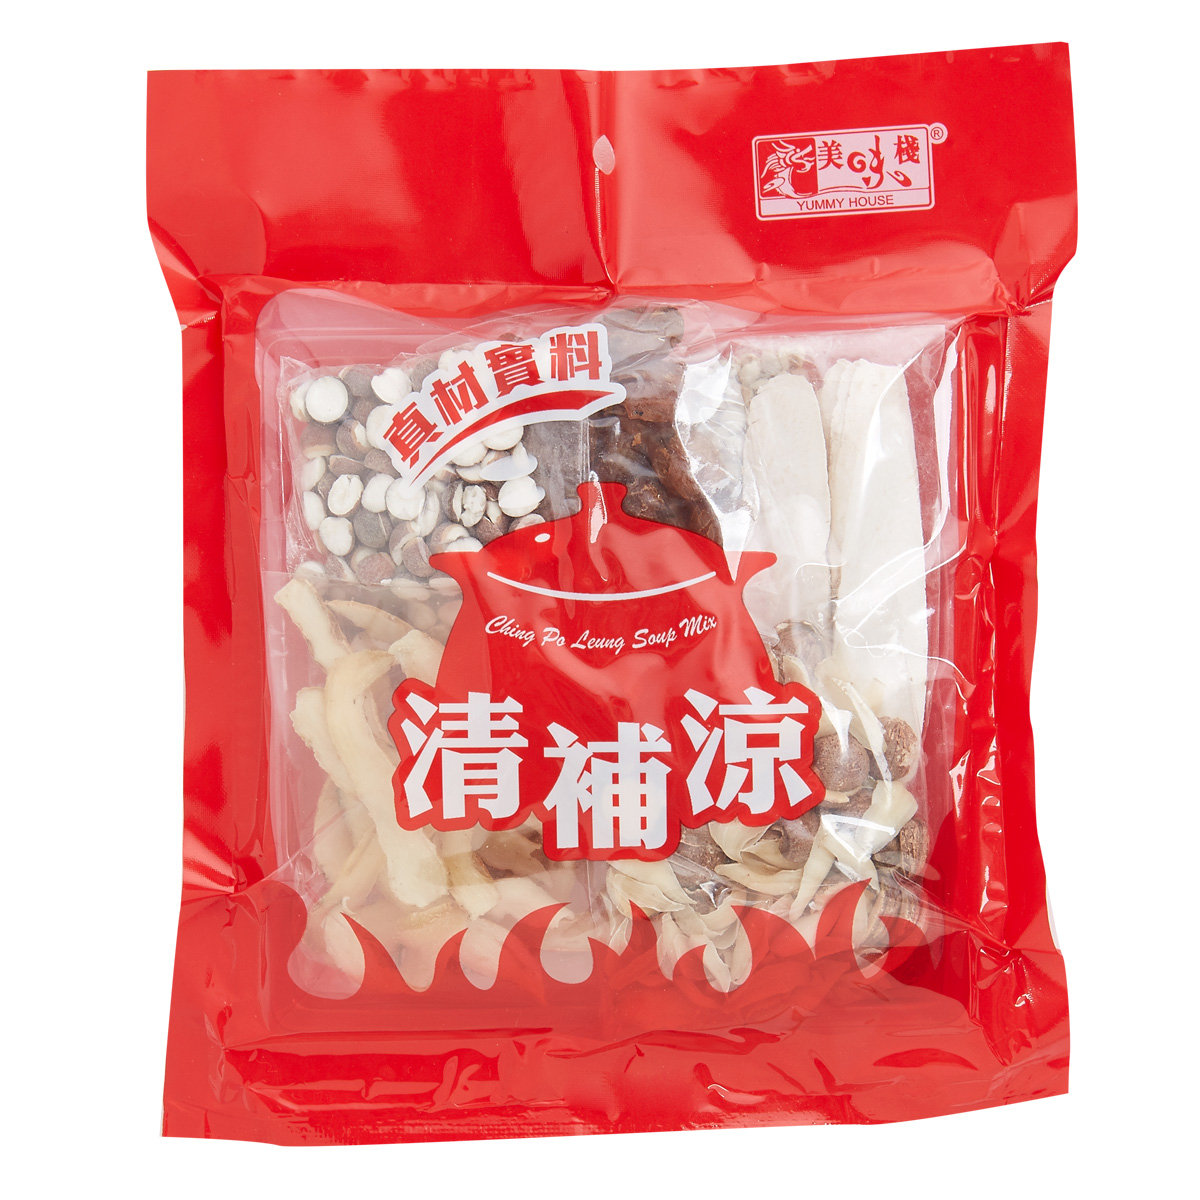 Ching Po Leung Soup Mix